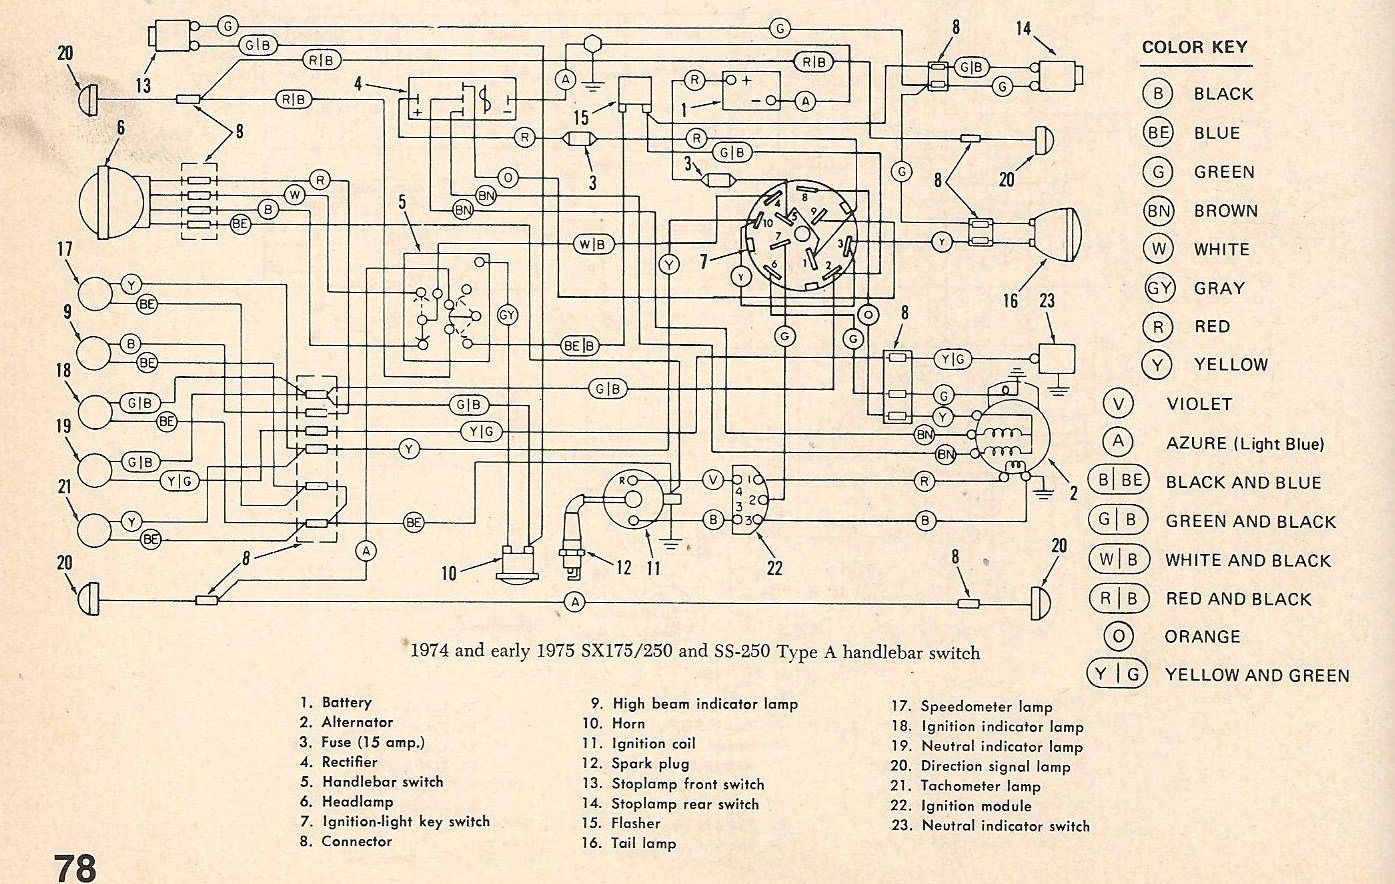 Harley Handlebar Wiring Diagram Free For You Davidson A 1975 250 Enduro Amf Switch Control